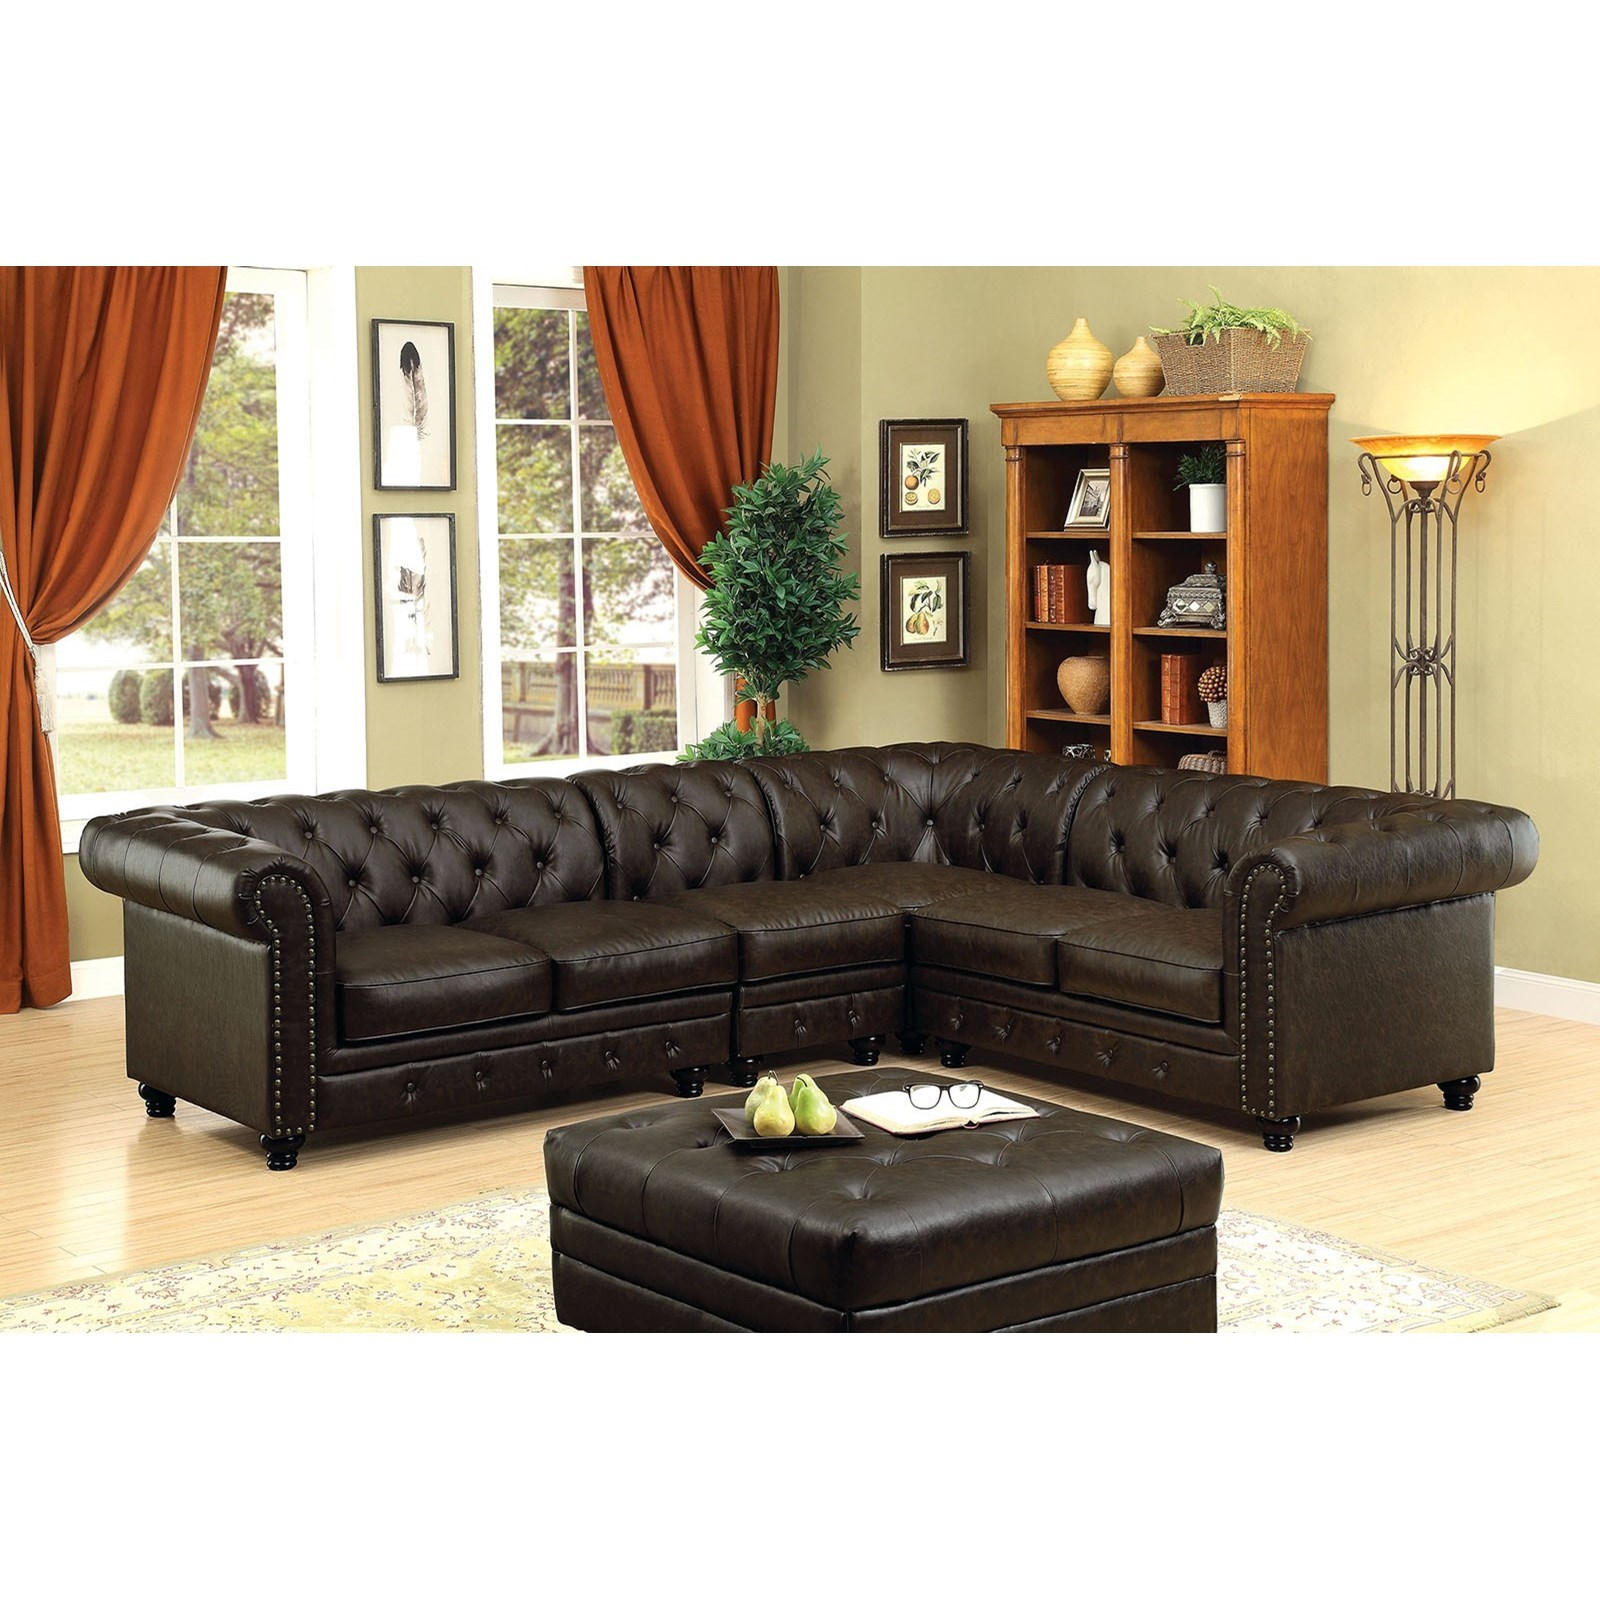 Stanford Sectional Leatherette by Furniture of America - FOA at Del Sol Furniture